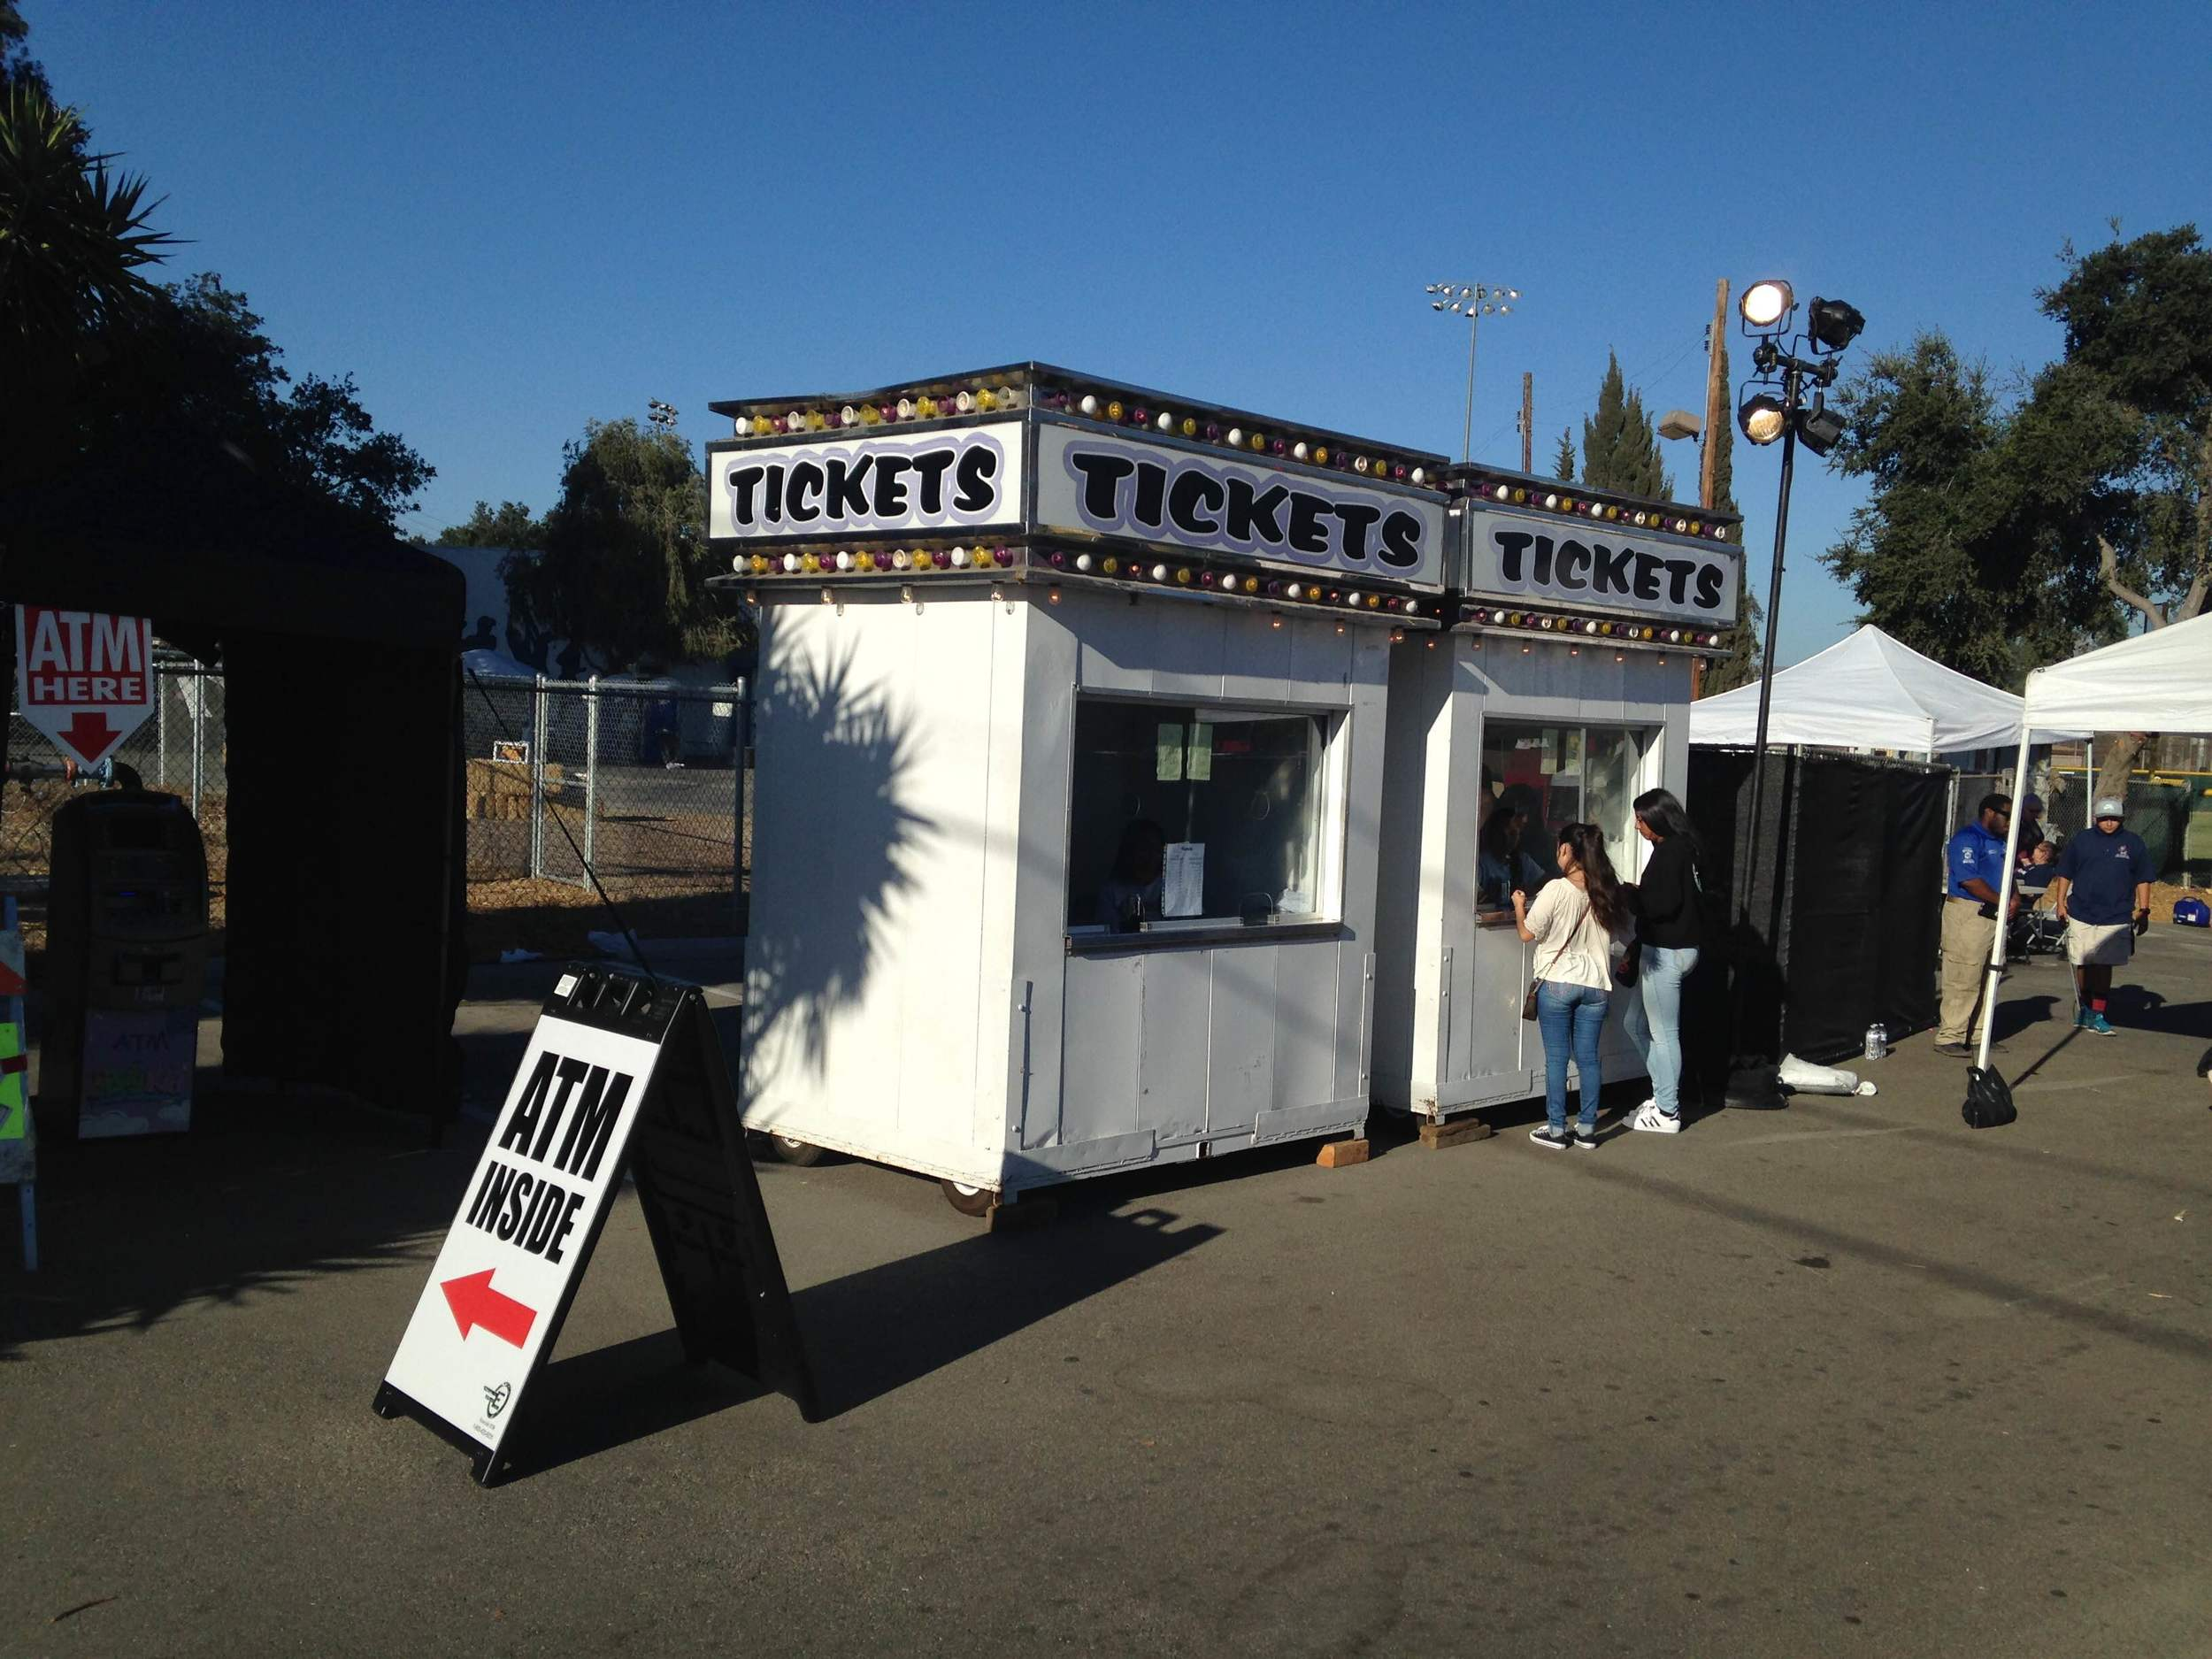 2016 45th Annual Citrus Festival, Ventura California.  ATM rental machine set up at the entrance and ticket booth.